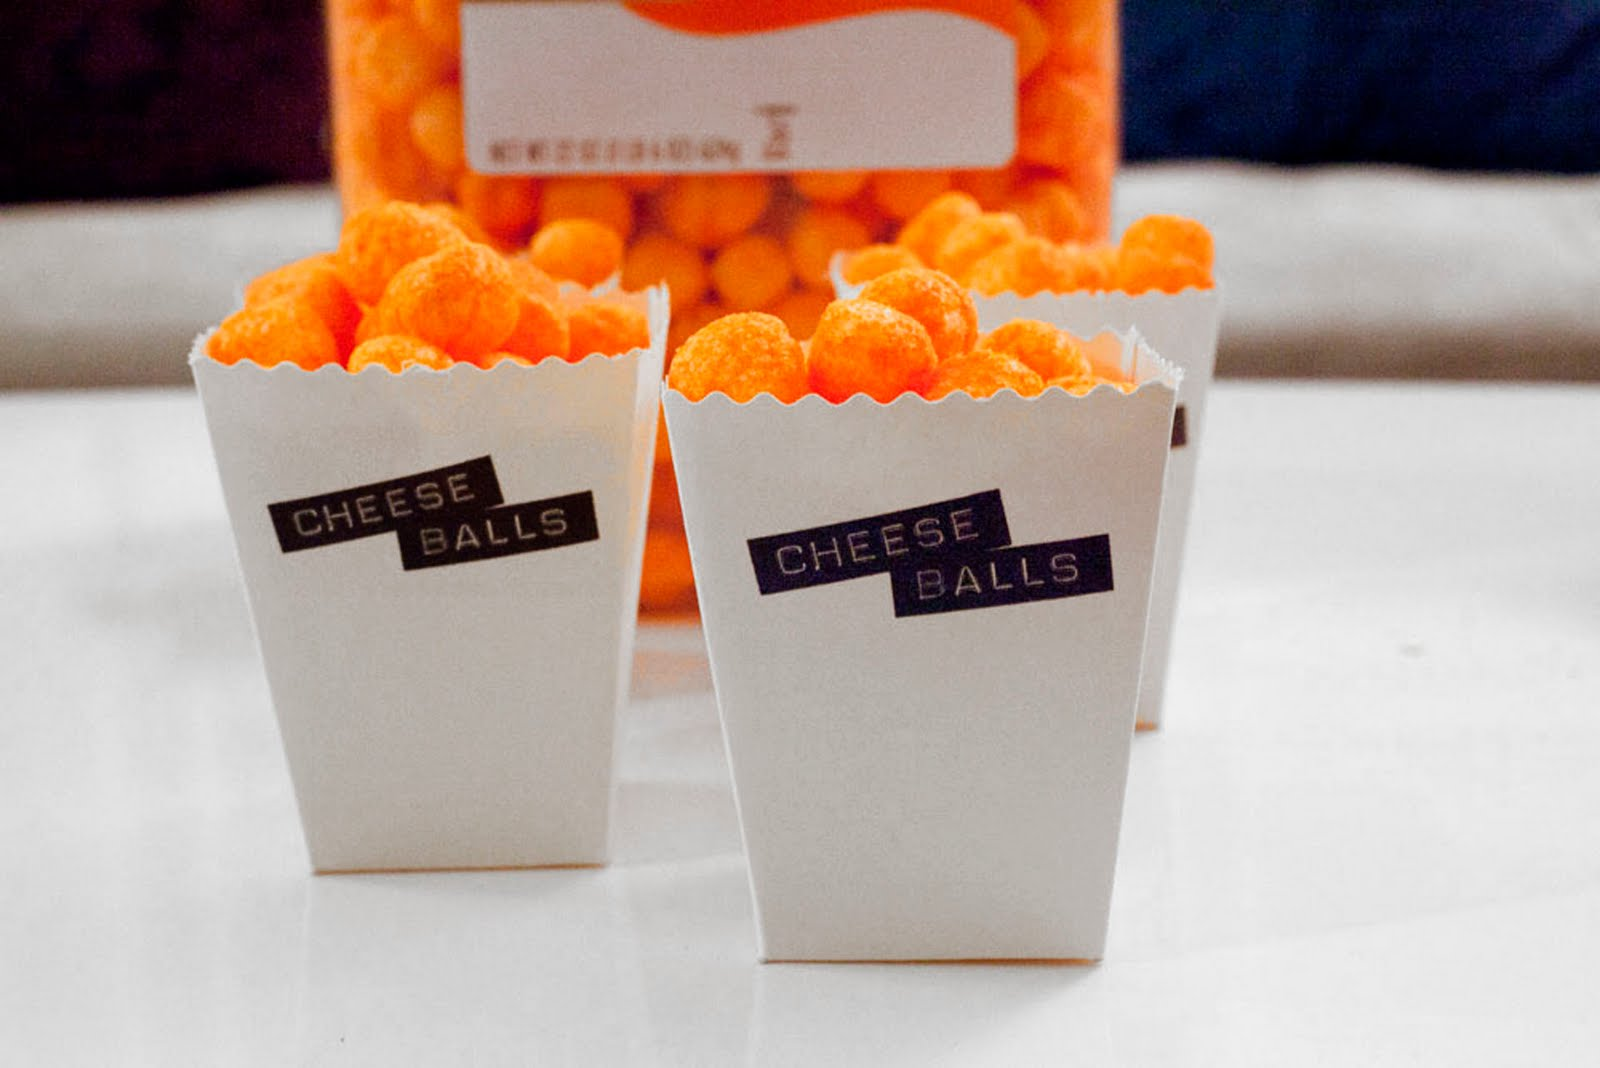 lavender s blue diy popcorn boxes or chuck cheese ball boxes